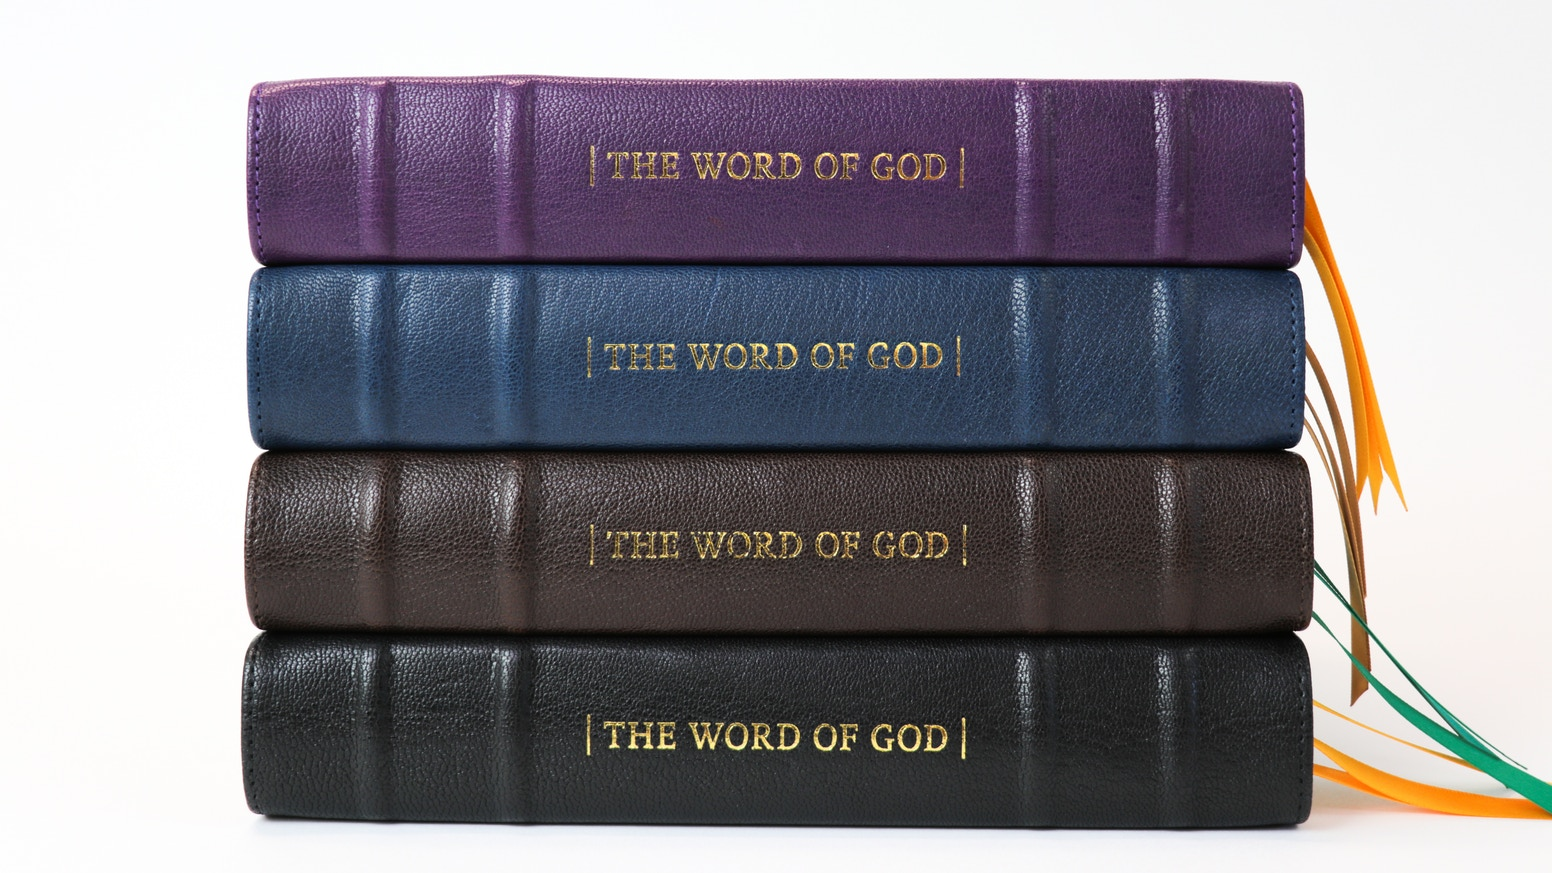 Re-discover the King James Bible bound by hand using goatskin leather. New layout design with defined archaic terms and illustrations.